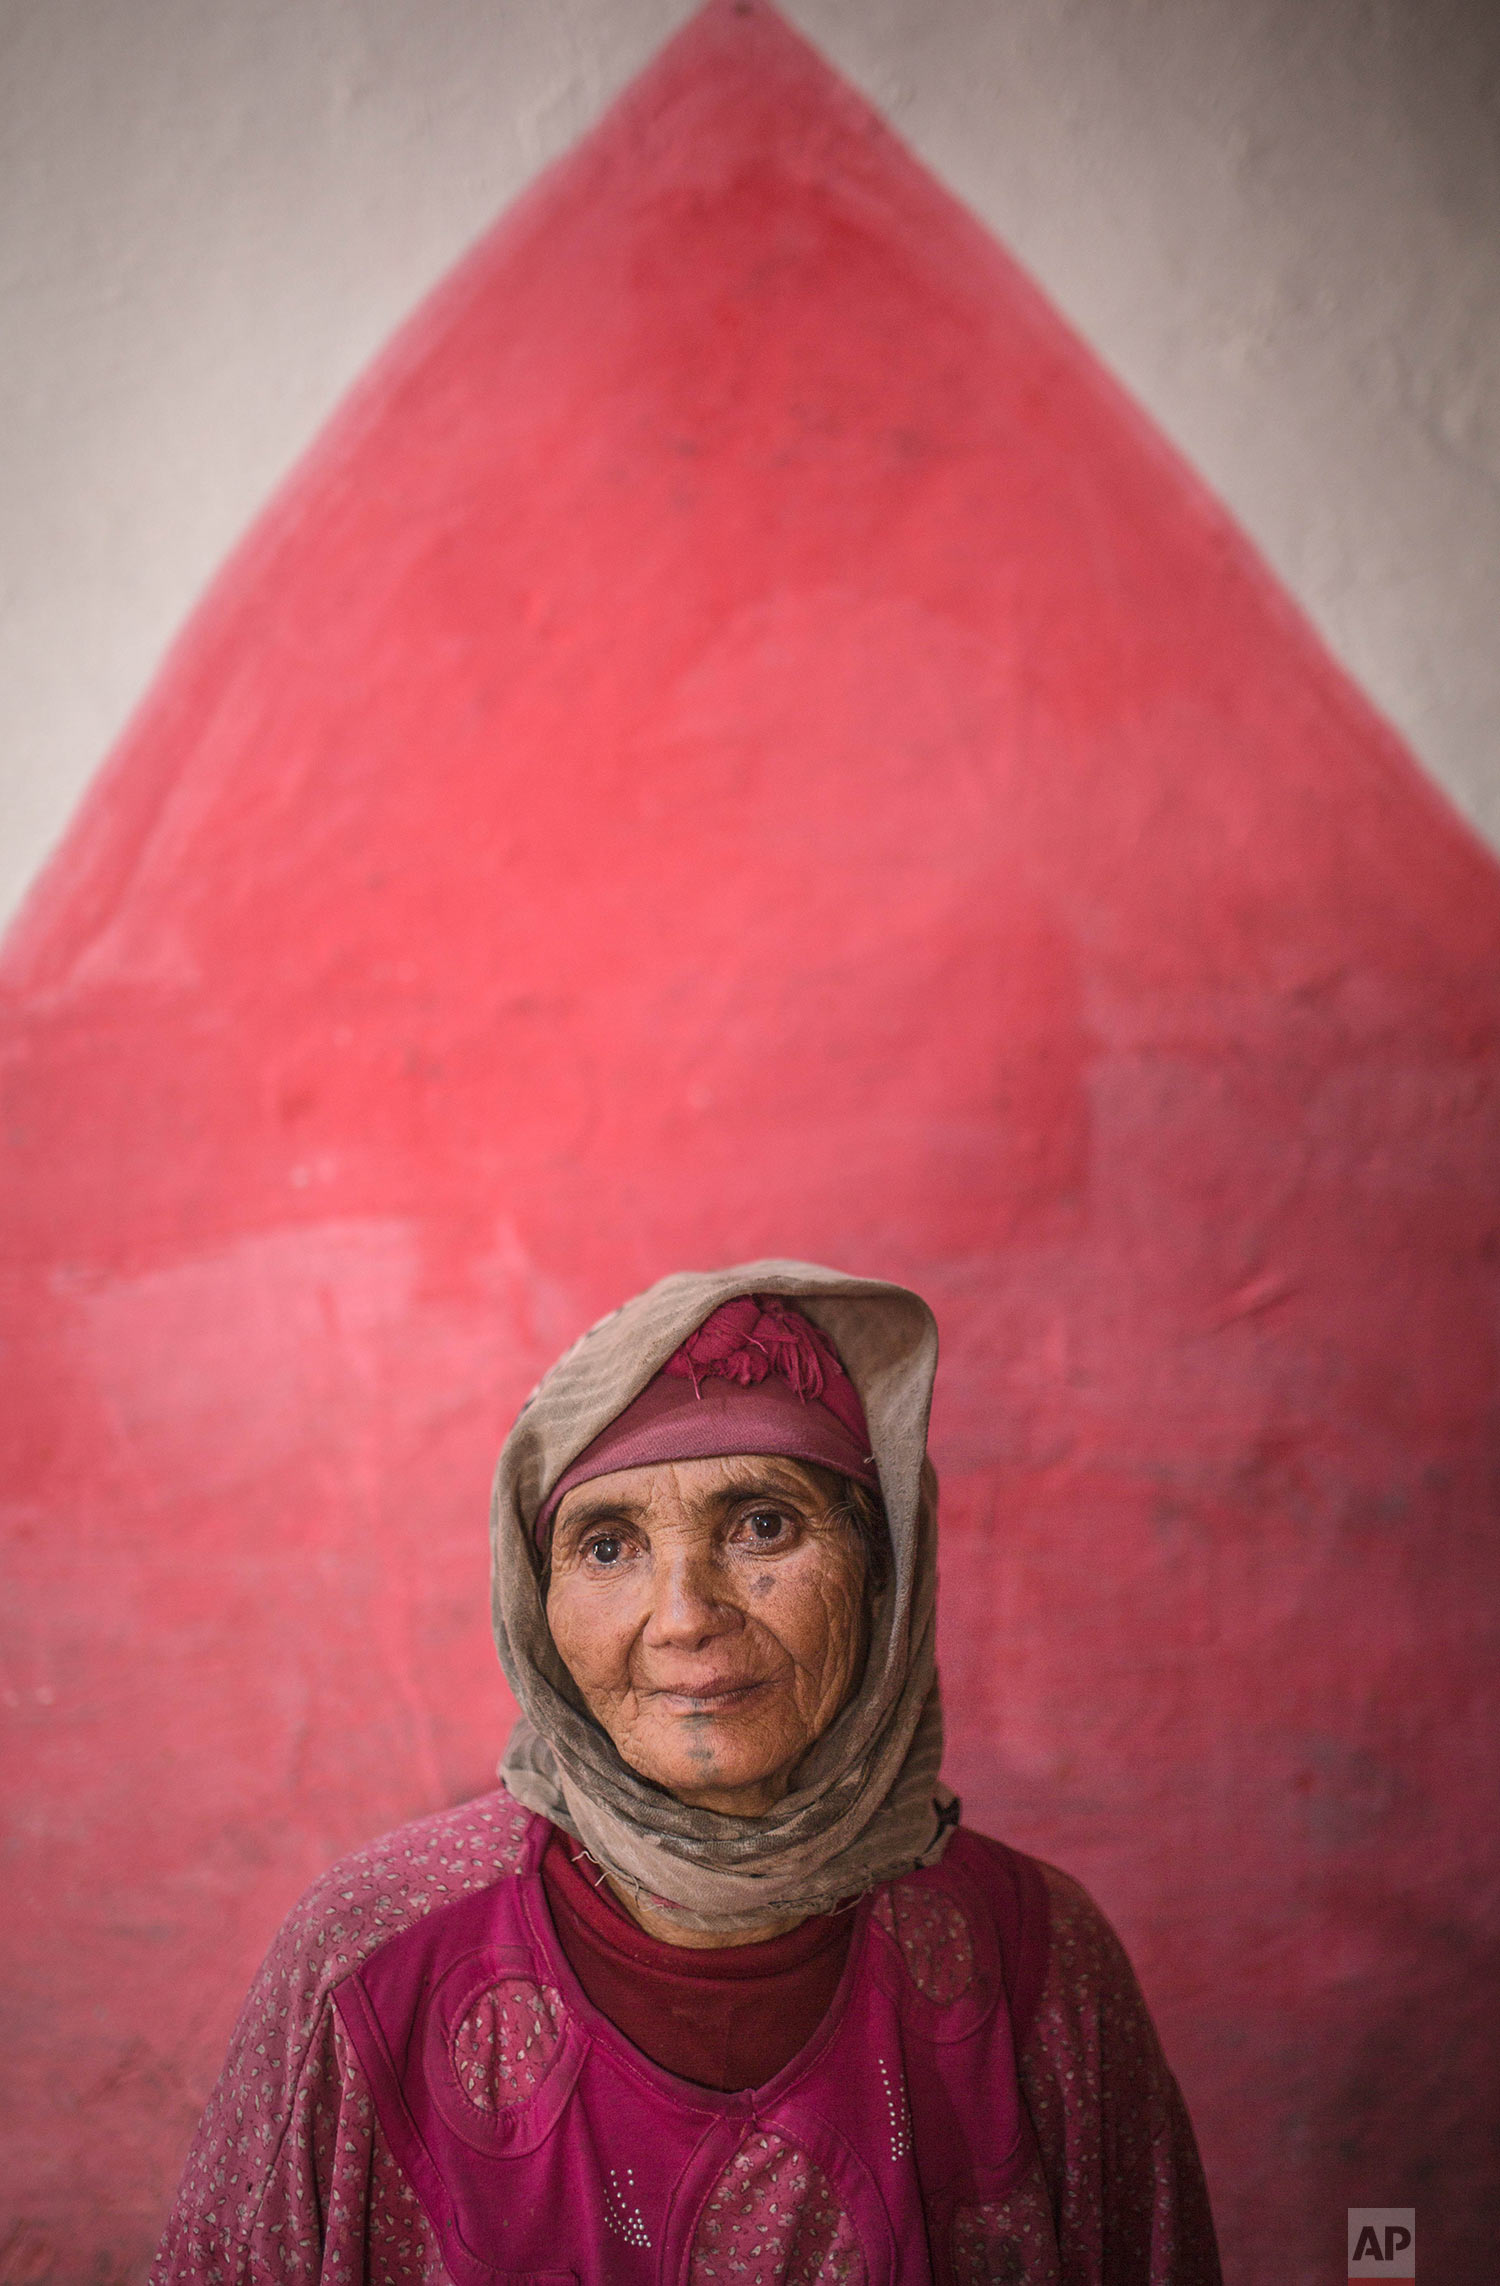 In this Saturday, Oct. 13, 2018 photo, Etto Elchafai, 63, poses for a portrait displaying her face tattoo, in the town of Tinguerf, near Azilal, central Morocco. (AP Photo/Mosa'ab Elshamy)